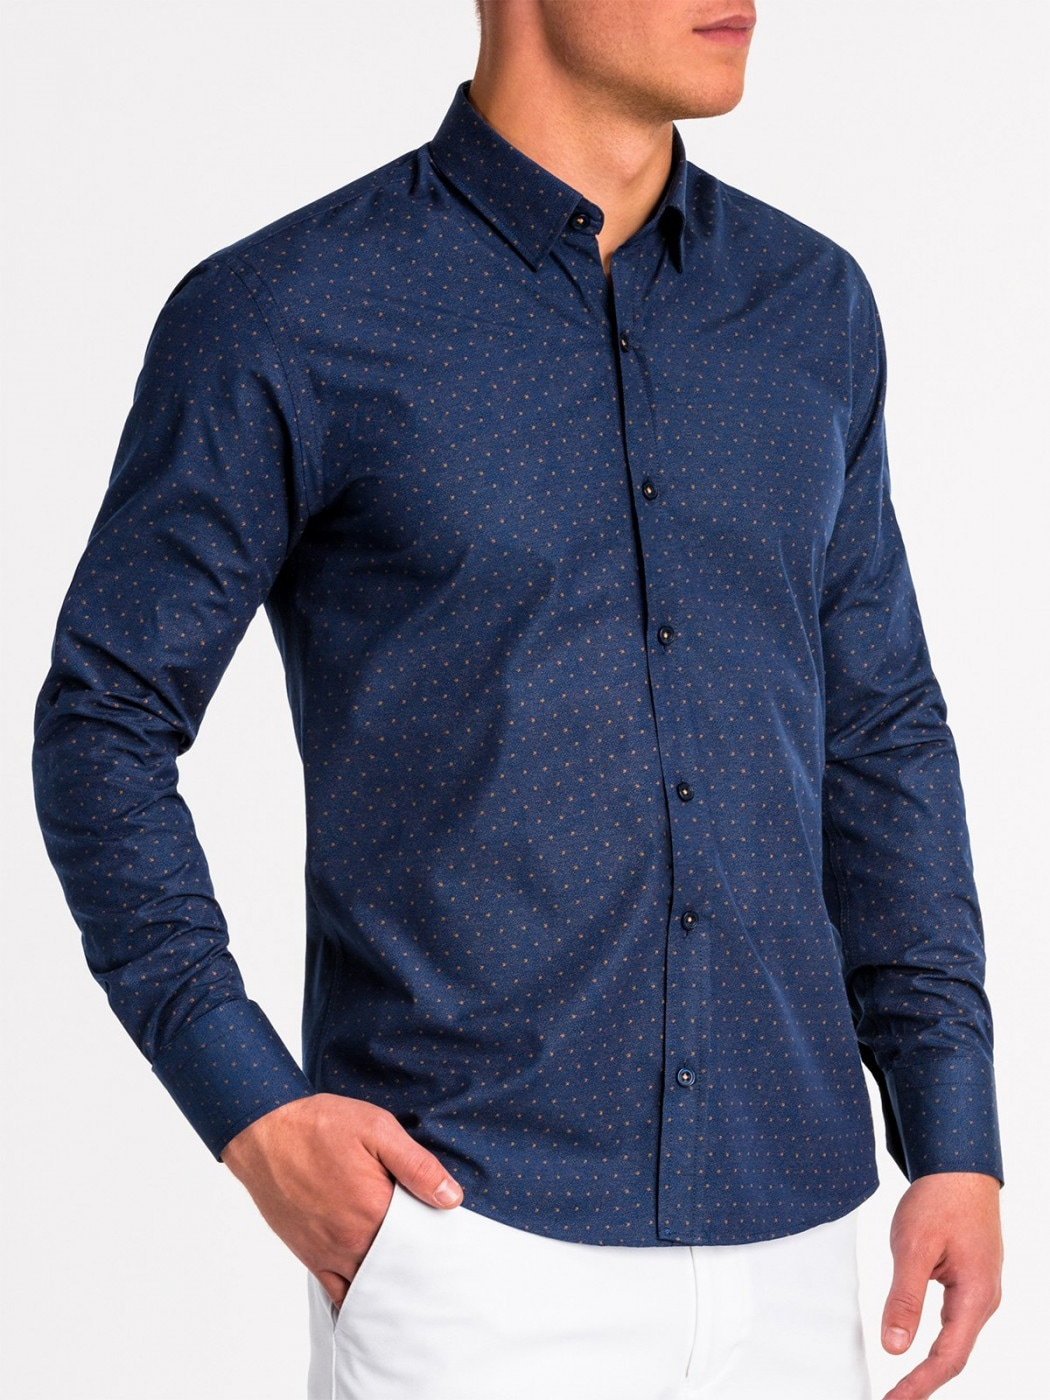 Ombre Clothing Men's elegant shirt with long sleeves K466